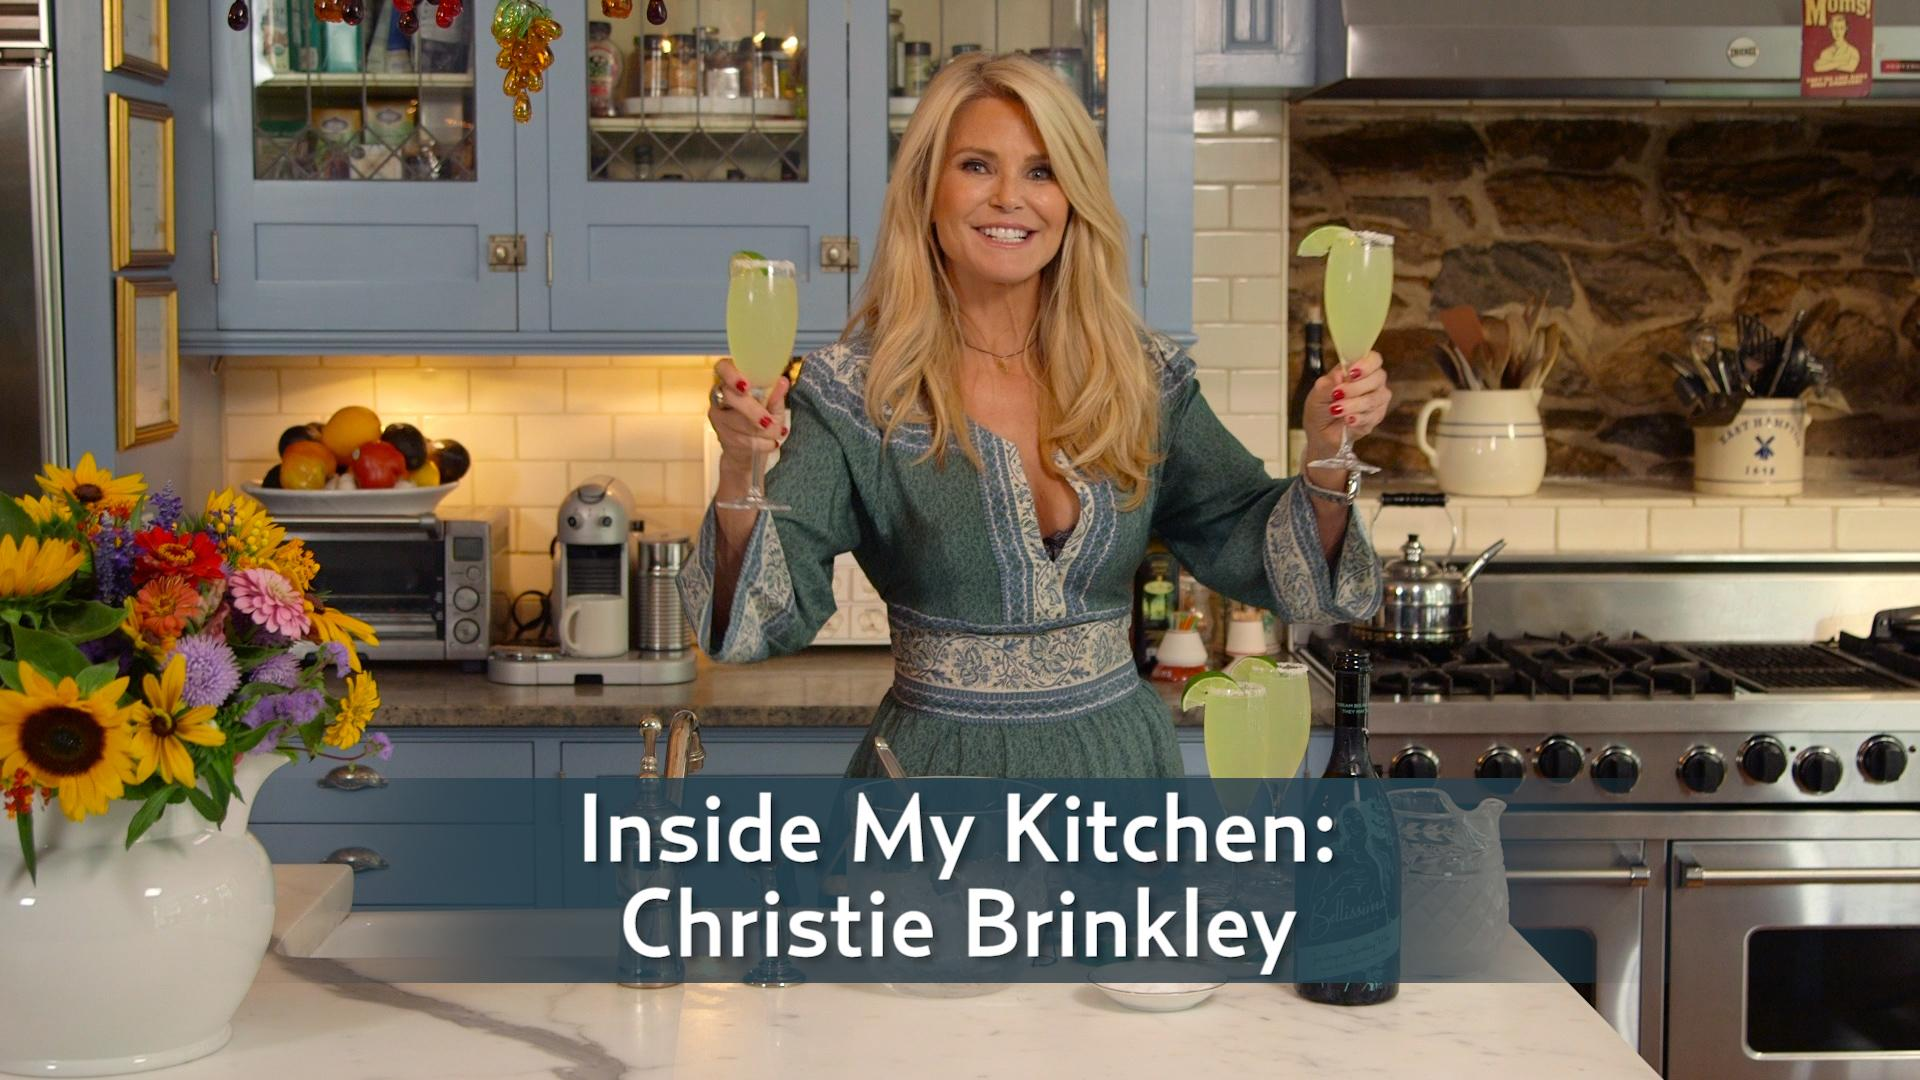 Inside My Kitchen: Christie Brinkley